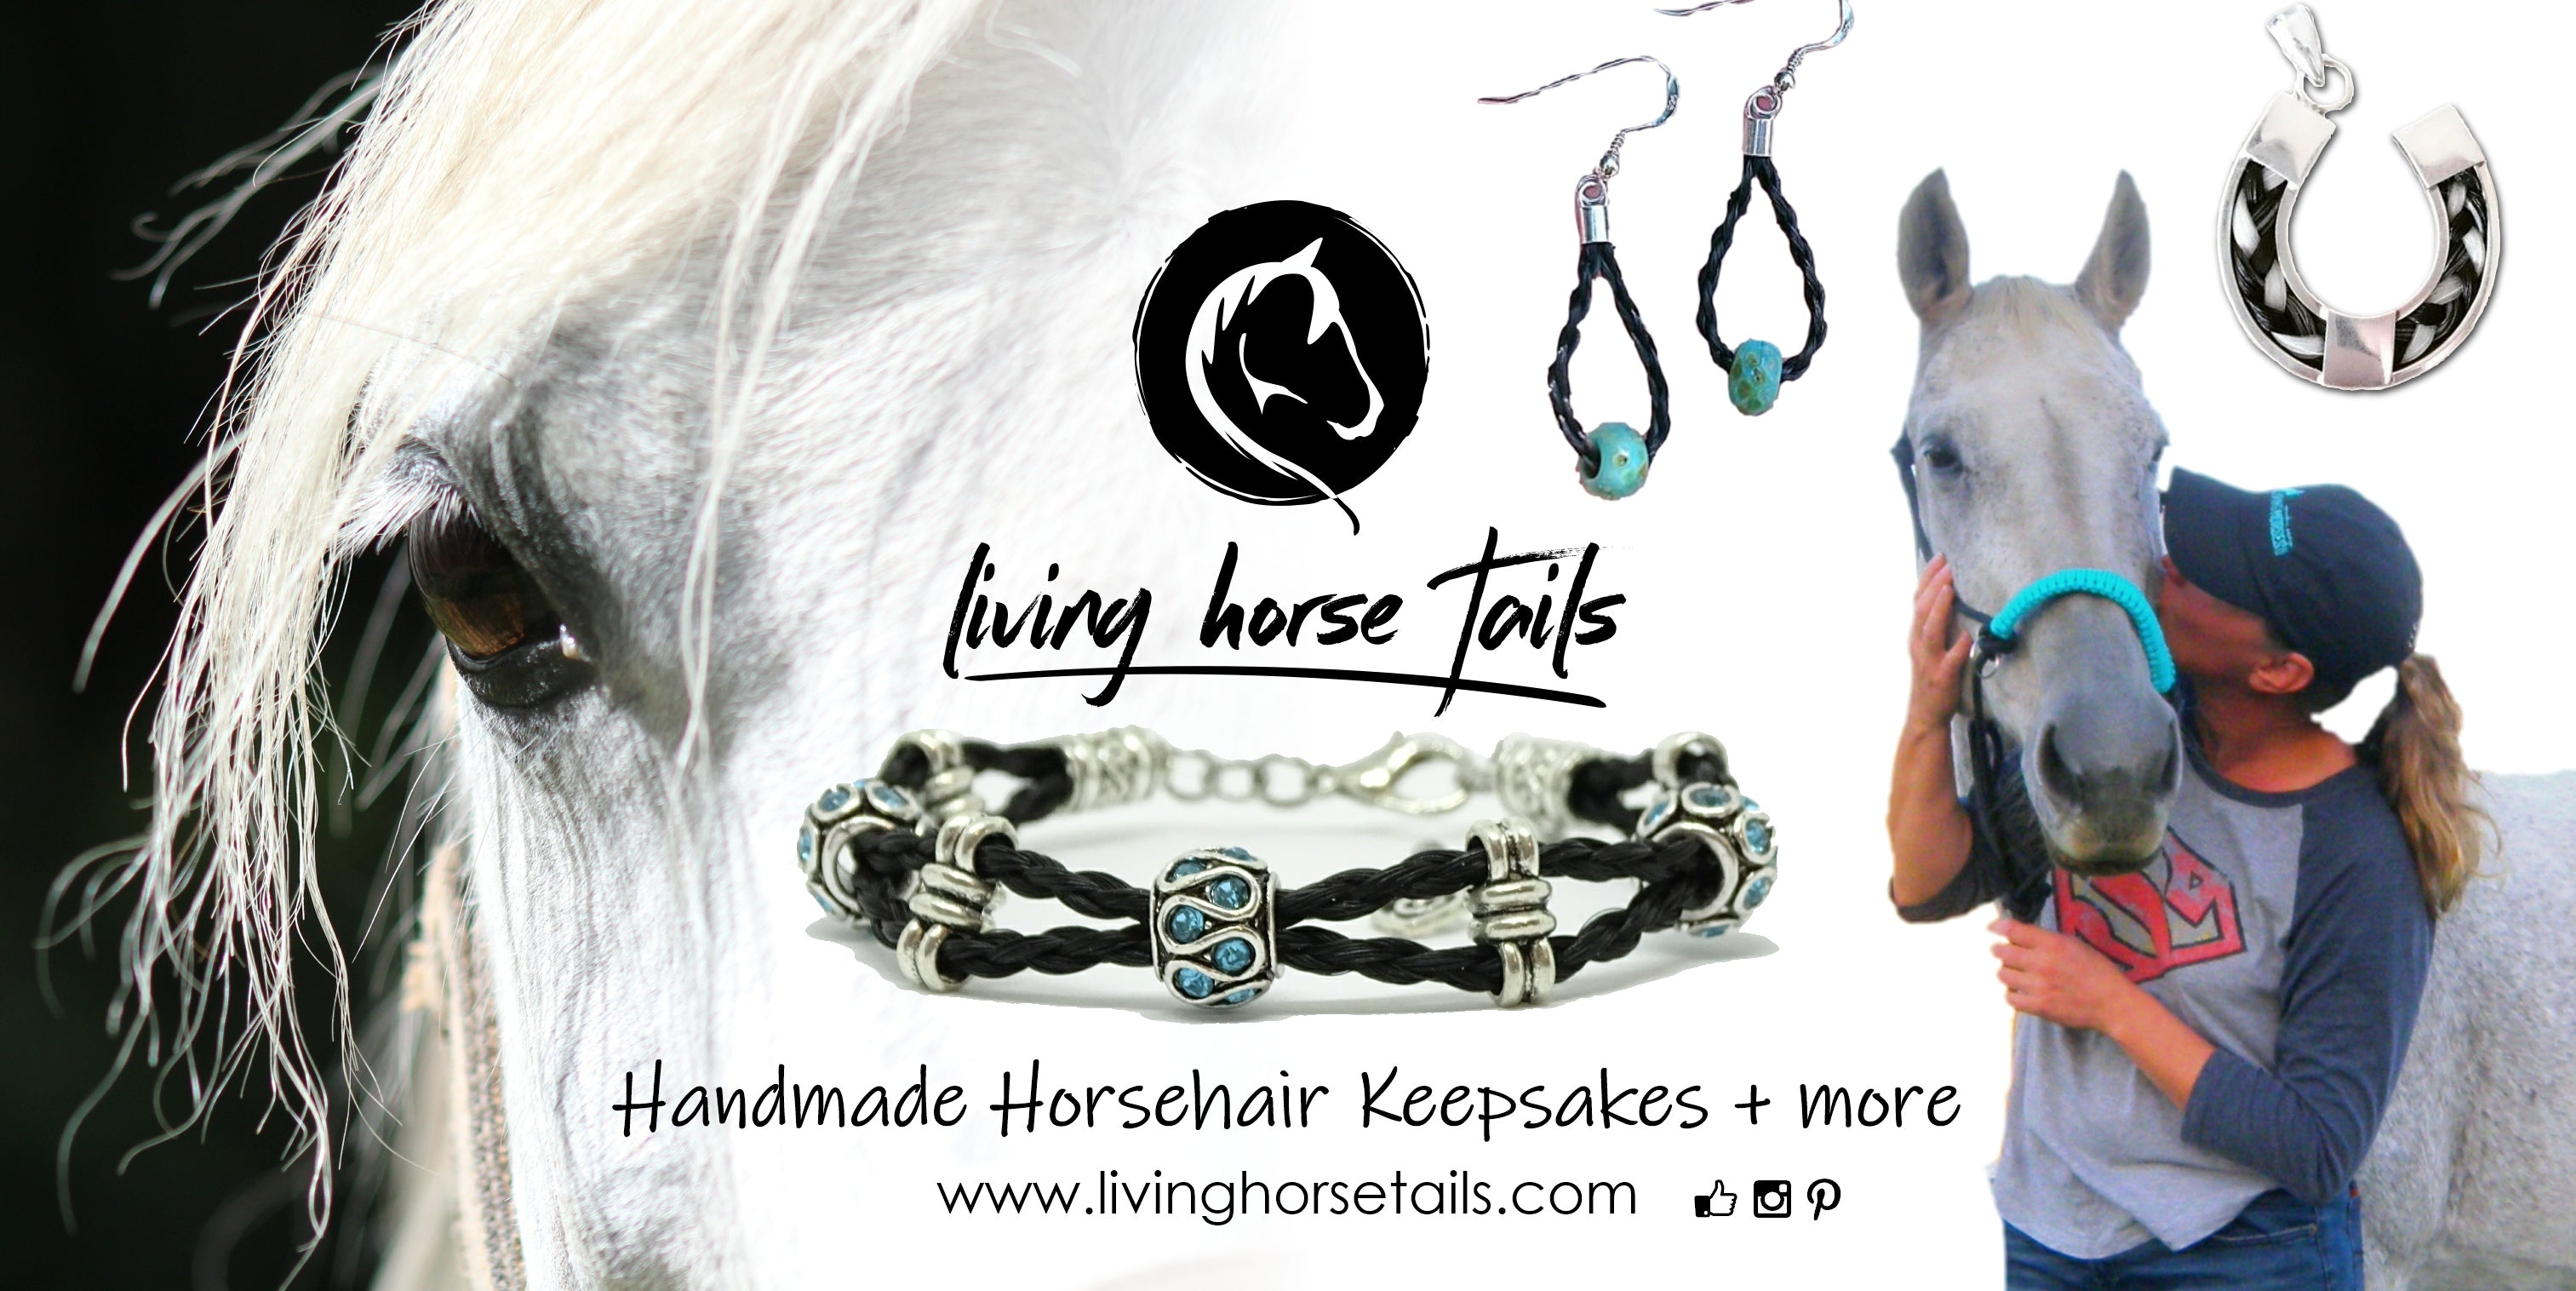 Living horse Tails - Handmade Horsehair Jewellery, keepsakes, gifts. Custom jewelry made with horse tail hair